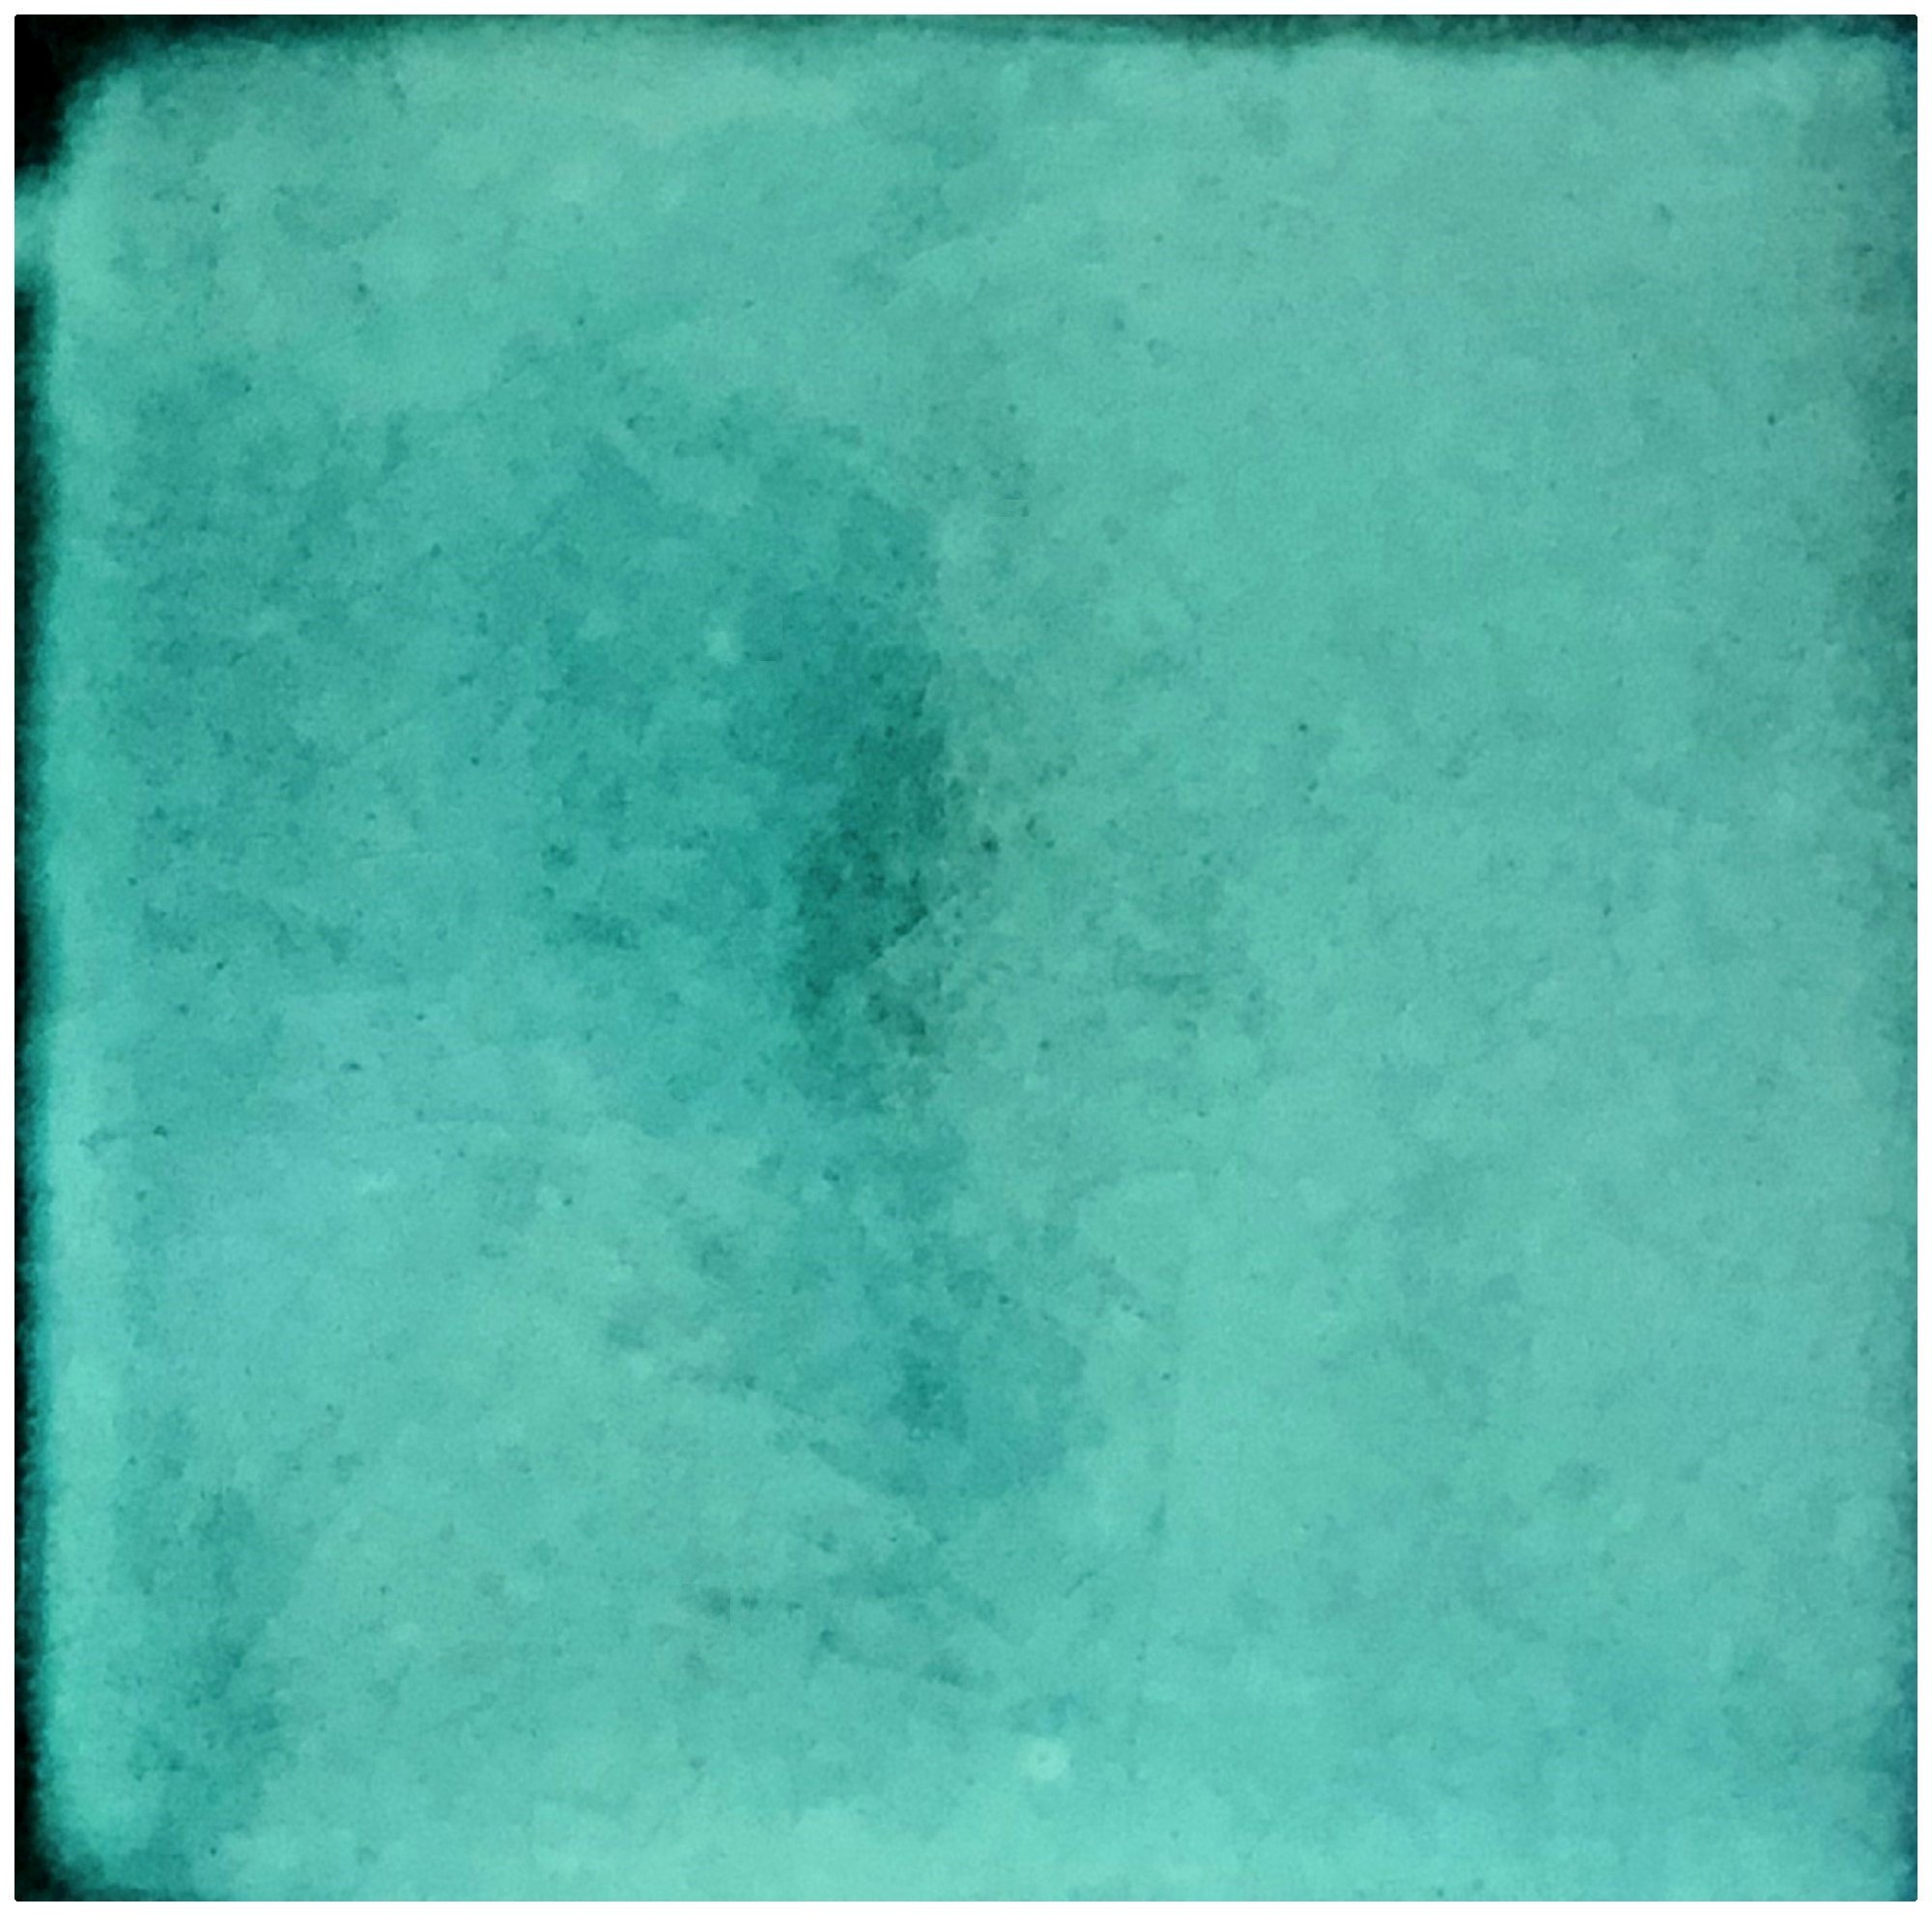 Rustico Tile and Stone TR4TURQUOISE Turquoise Ceramic Tile Box of 90, 4 x 4'', Blue